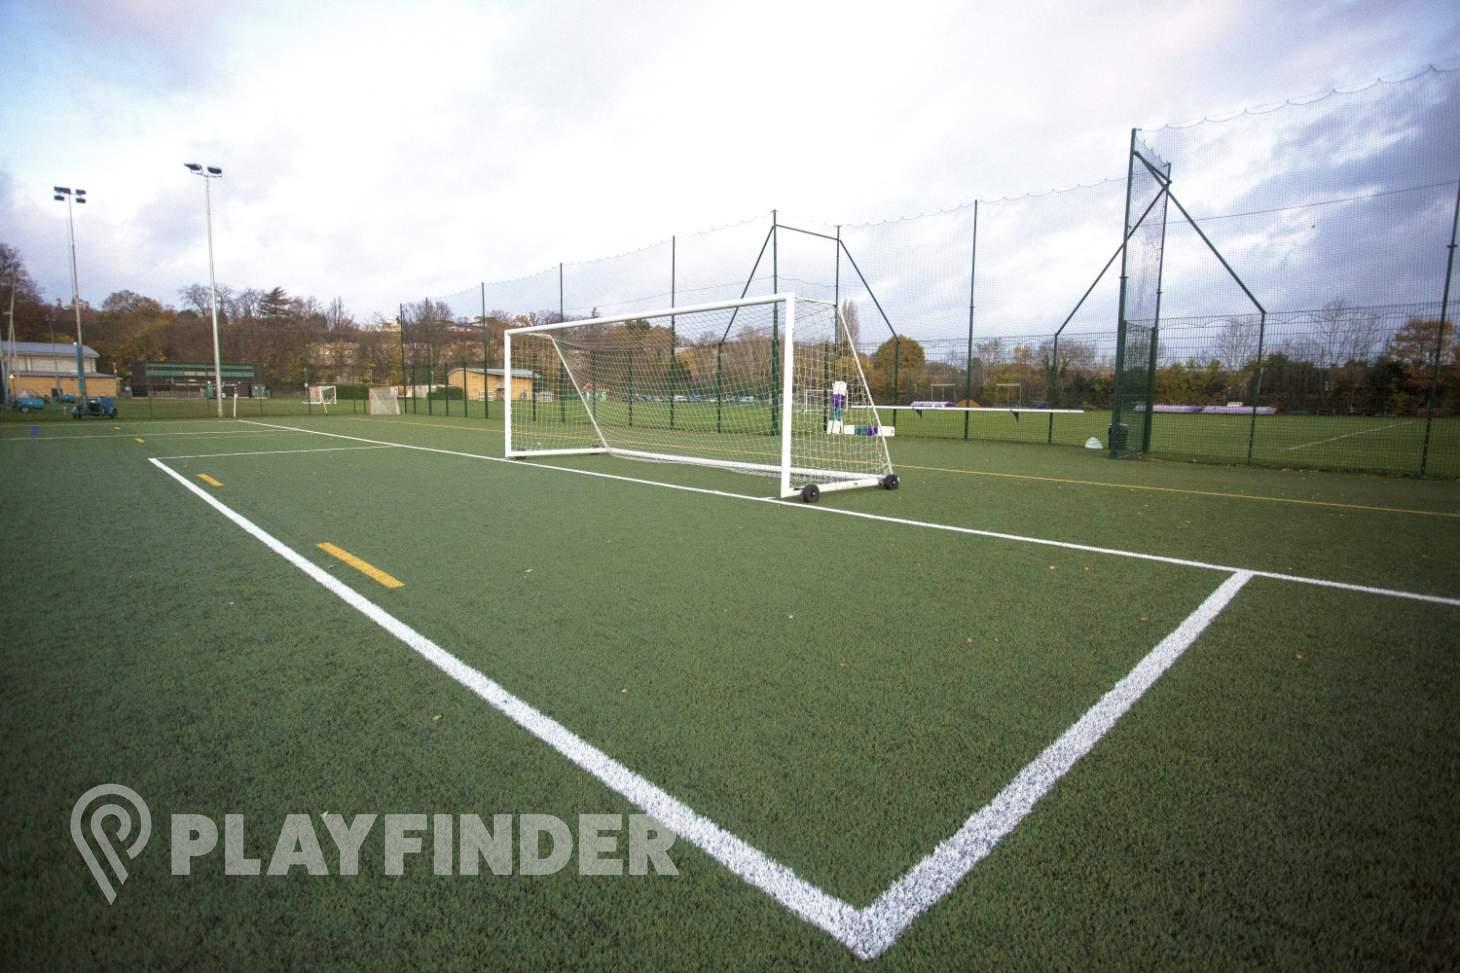 Royal Holloway University Sports Centre 11 a side | 3G Astroturf football pitch